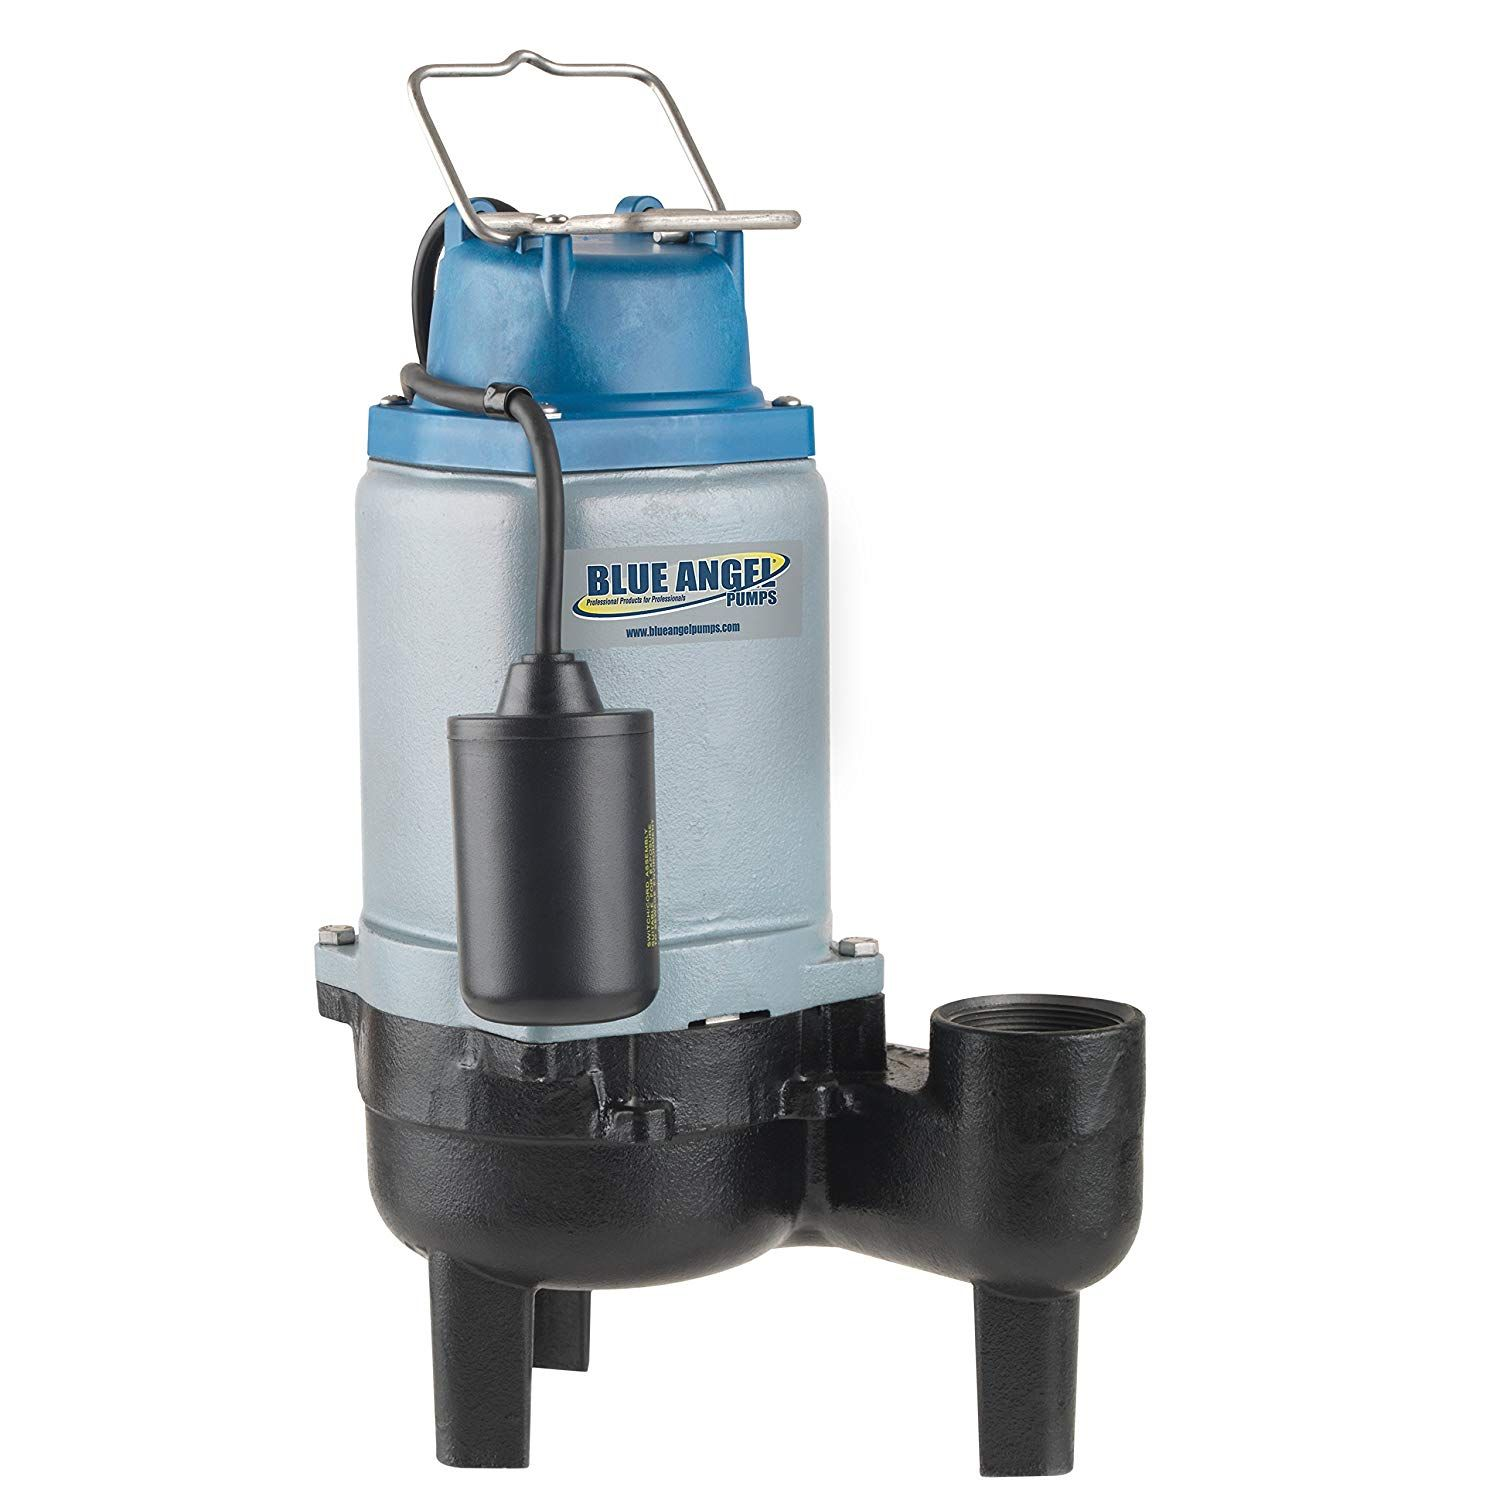 Blue Angel Pumps T50sw 1 2 Hp 120v Commercial Grade Submersible Sewage Pump Be Sure To Check Out This Awesome Pr Sewage Pump Ceiling Fan Design Sewage Pumps